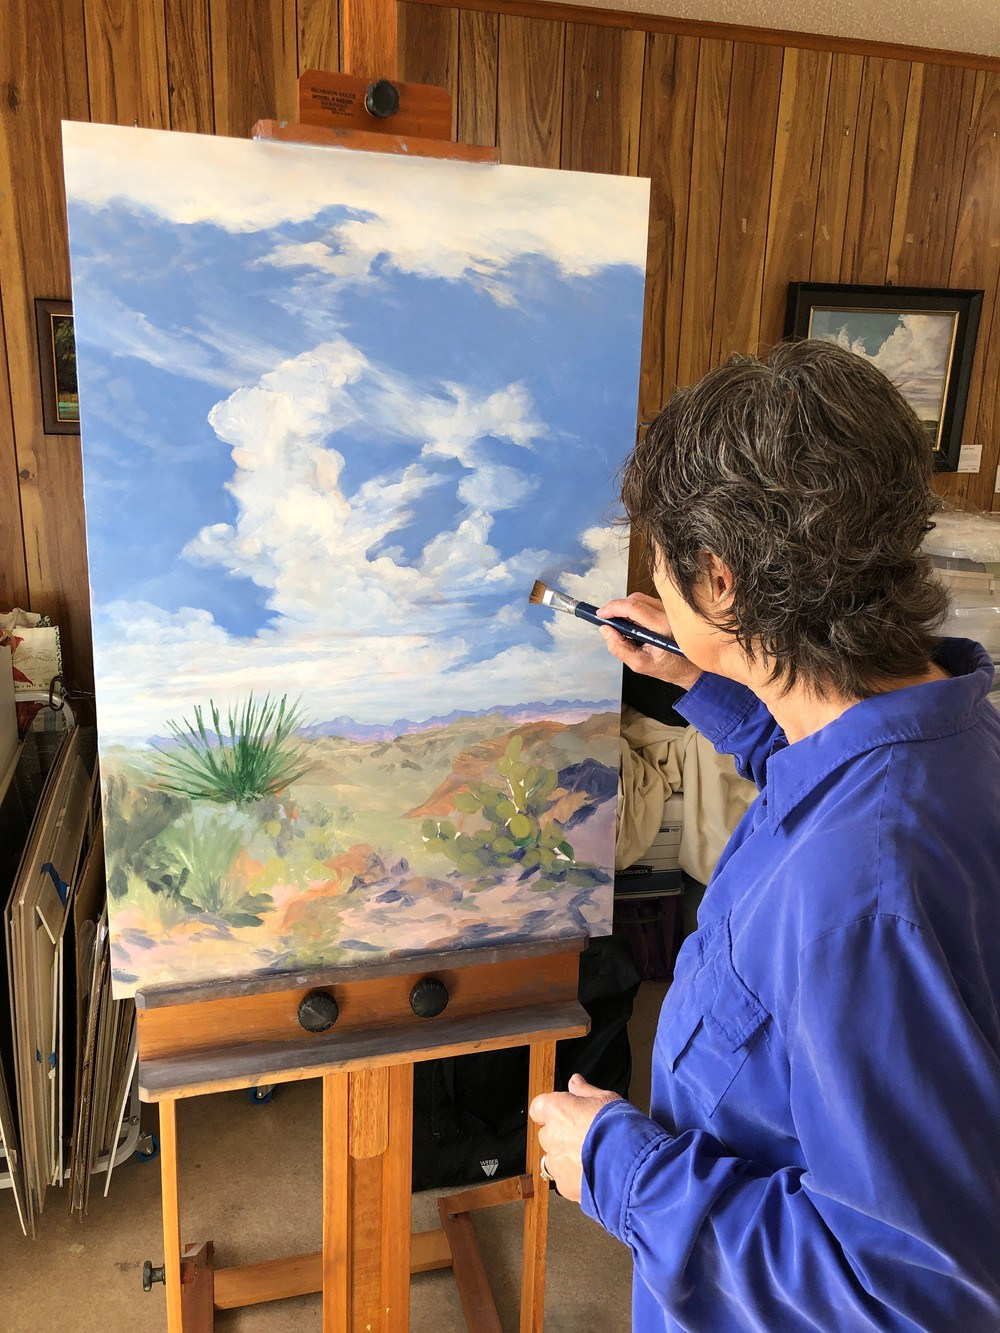 artist painting a landscape on large canvas